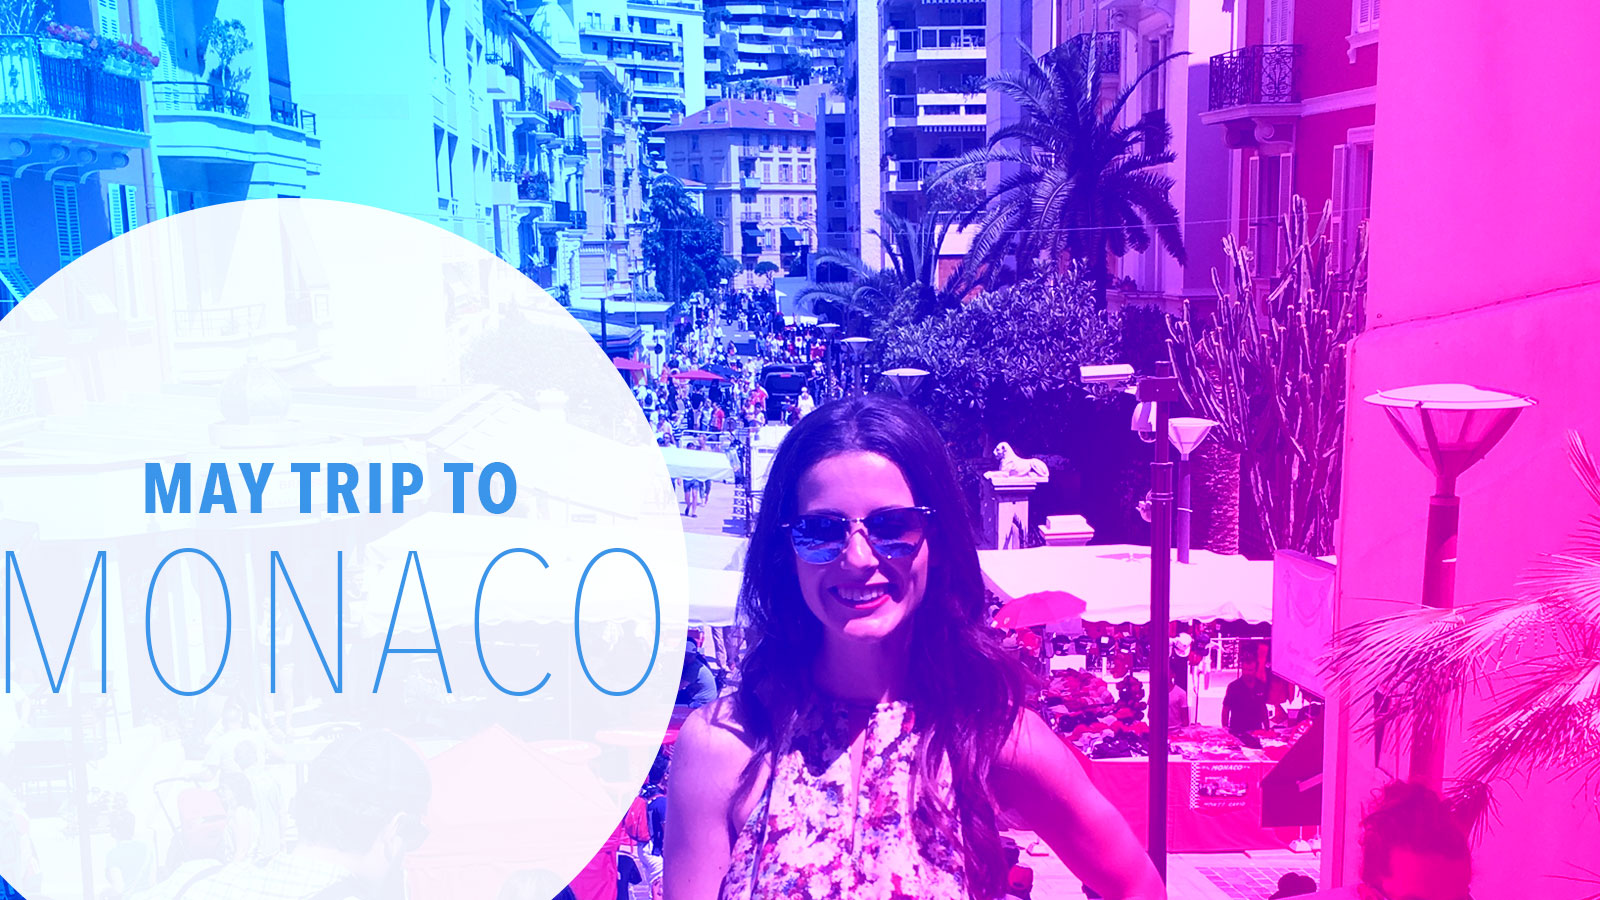 My May Day Trip to Monaco in the French Riviera